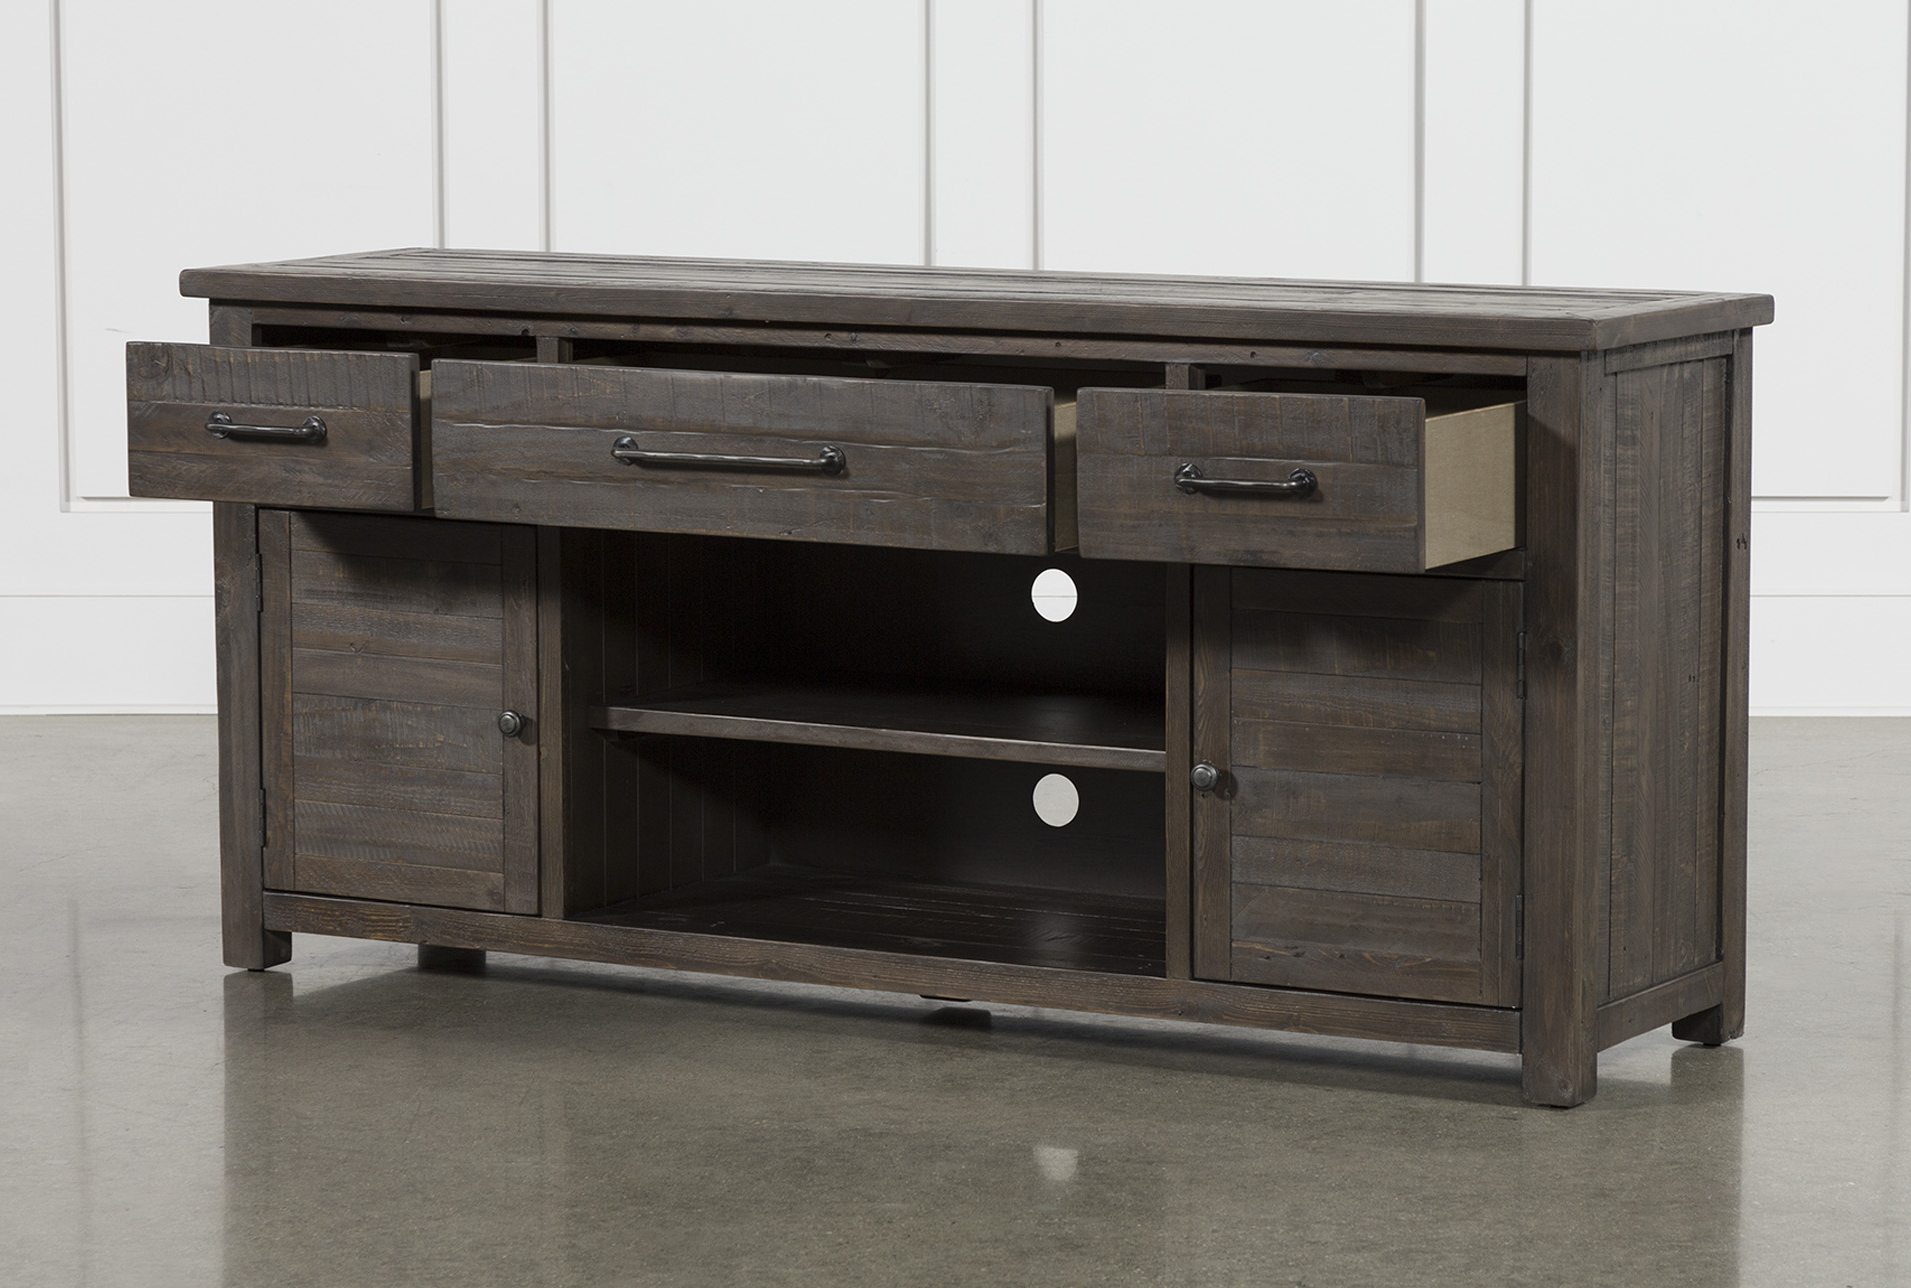 70 Inch Tv Stand, Diy Tv Stand (Gallery 1 of 20)